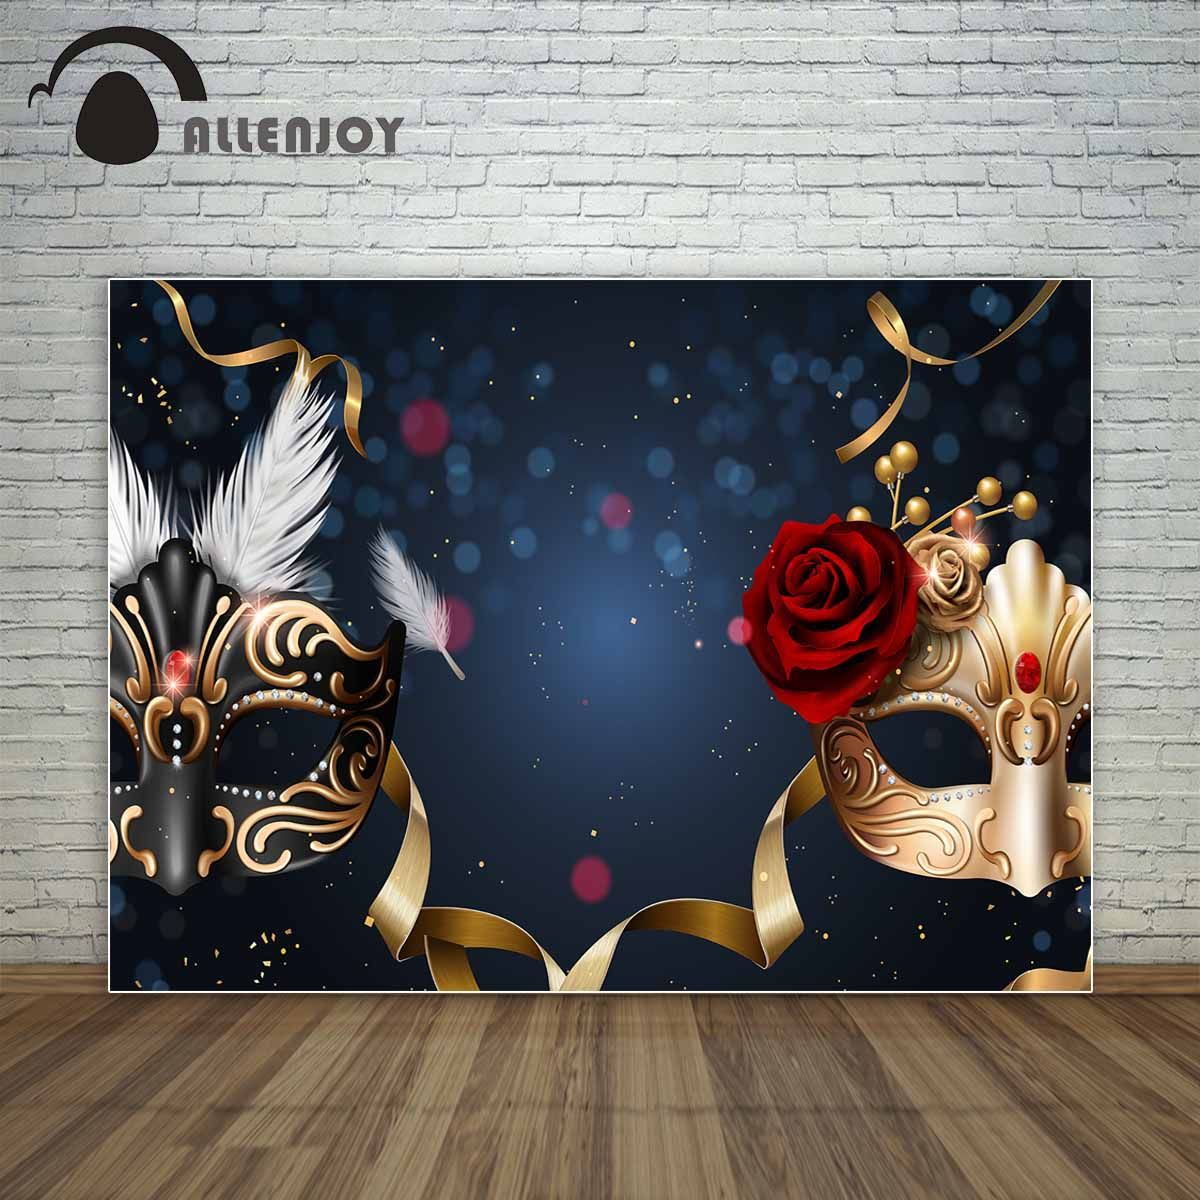 Masquerade Ball Prom Decorations: Allenjoy Black And Golden Masks Red Rose Dance Party Prom